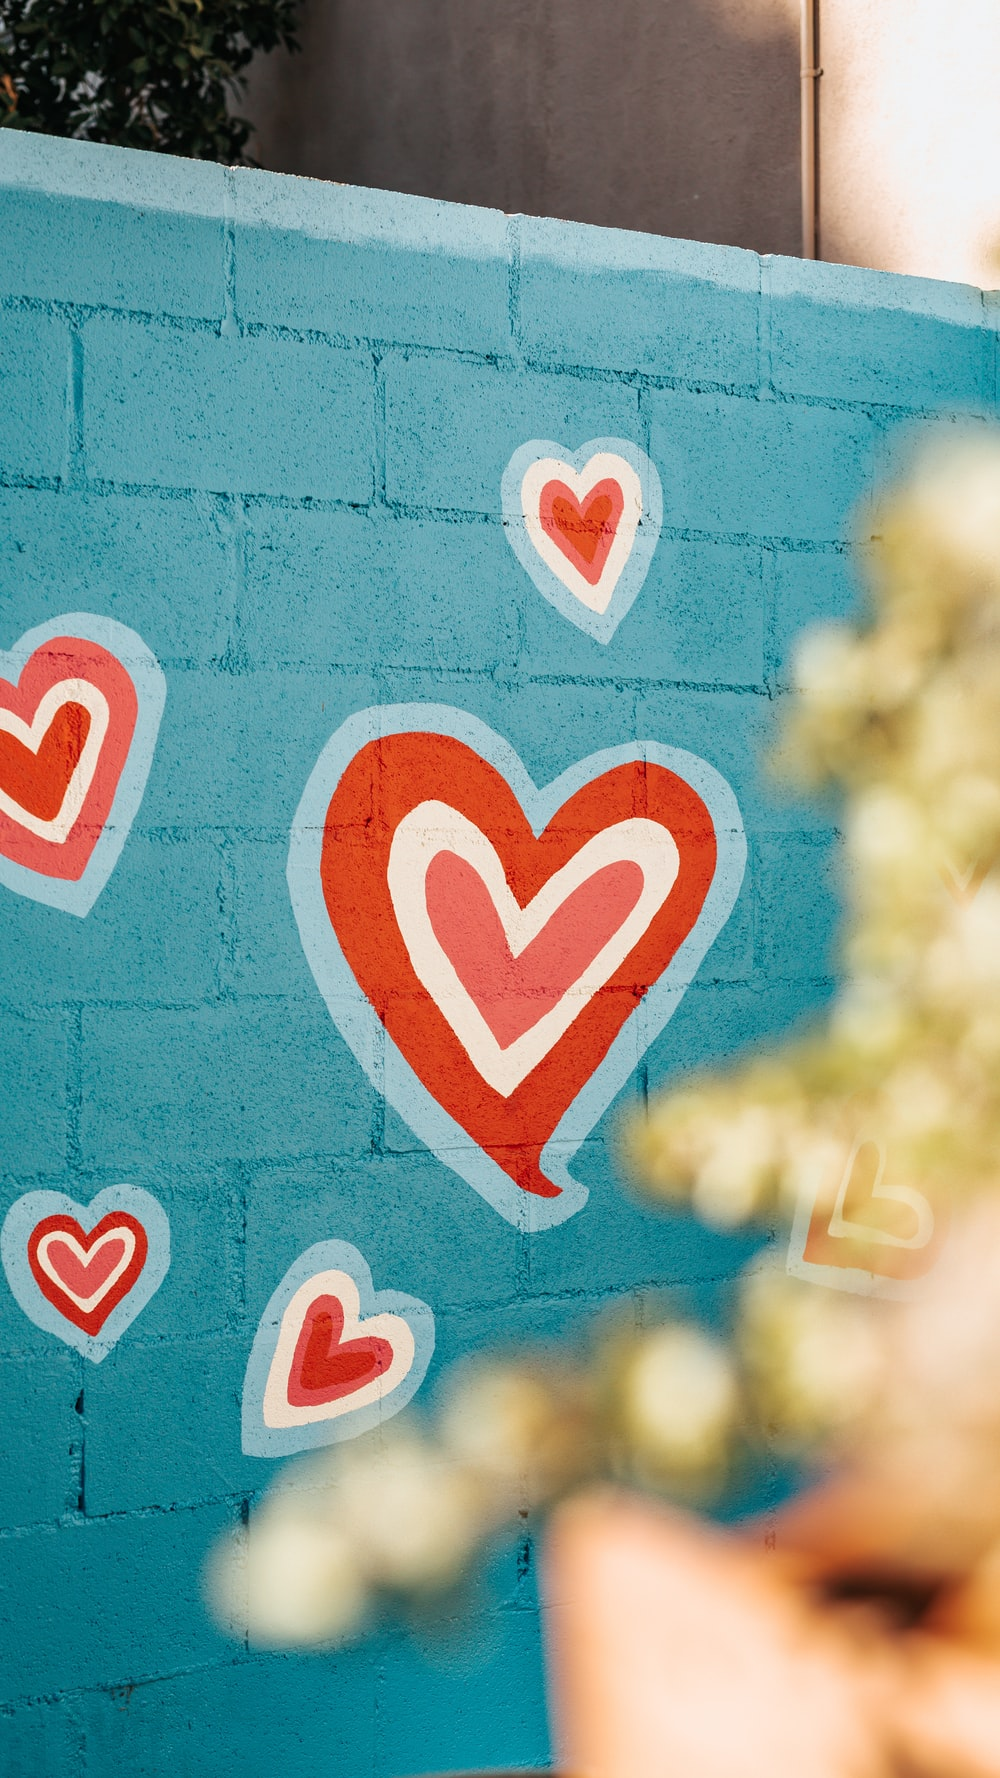 selective photo of red and white hearts graffiti